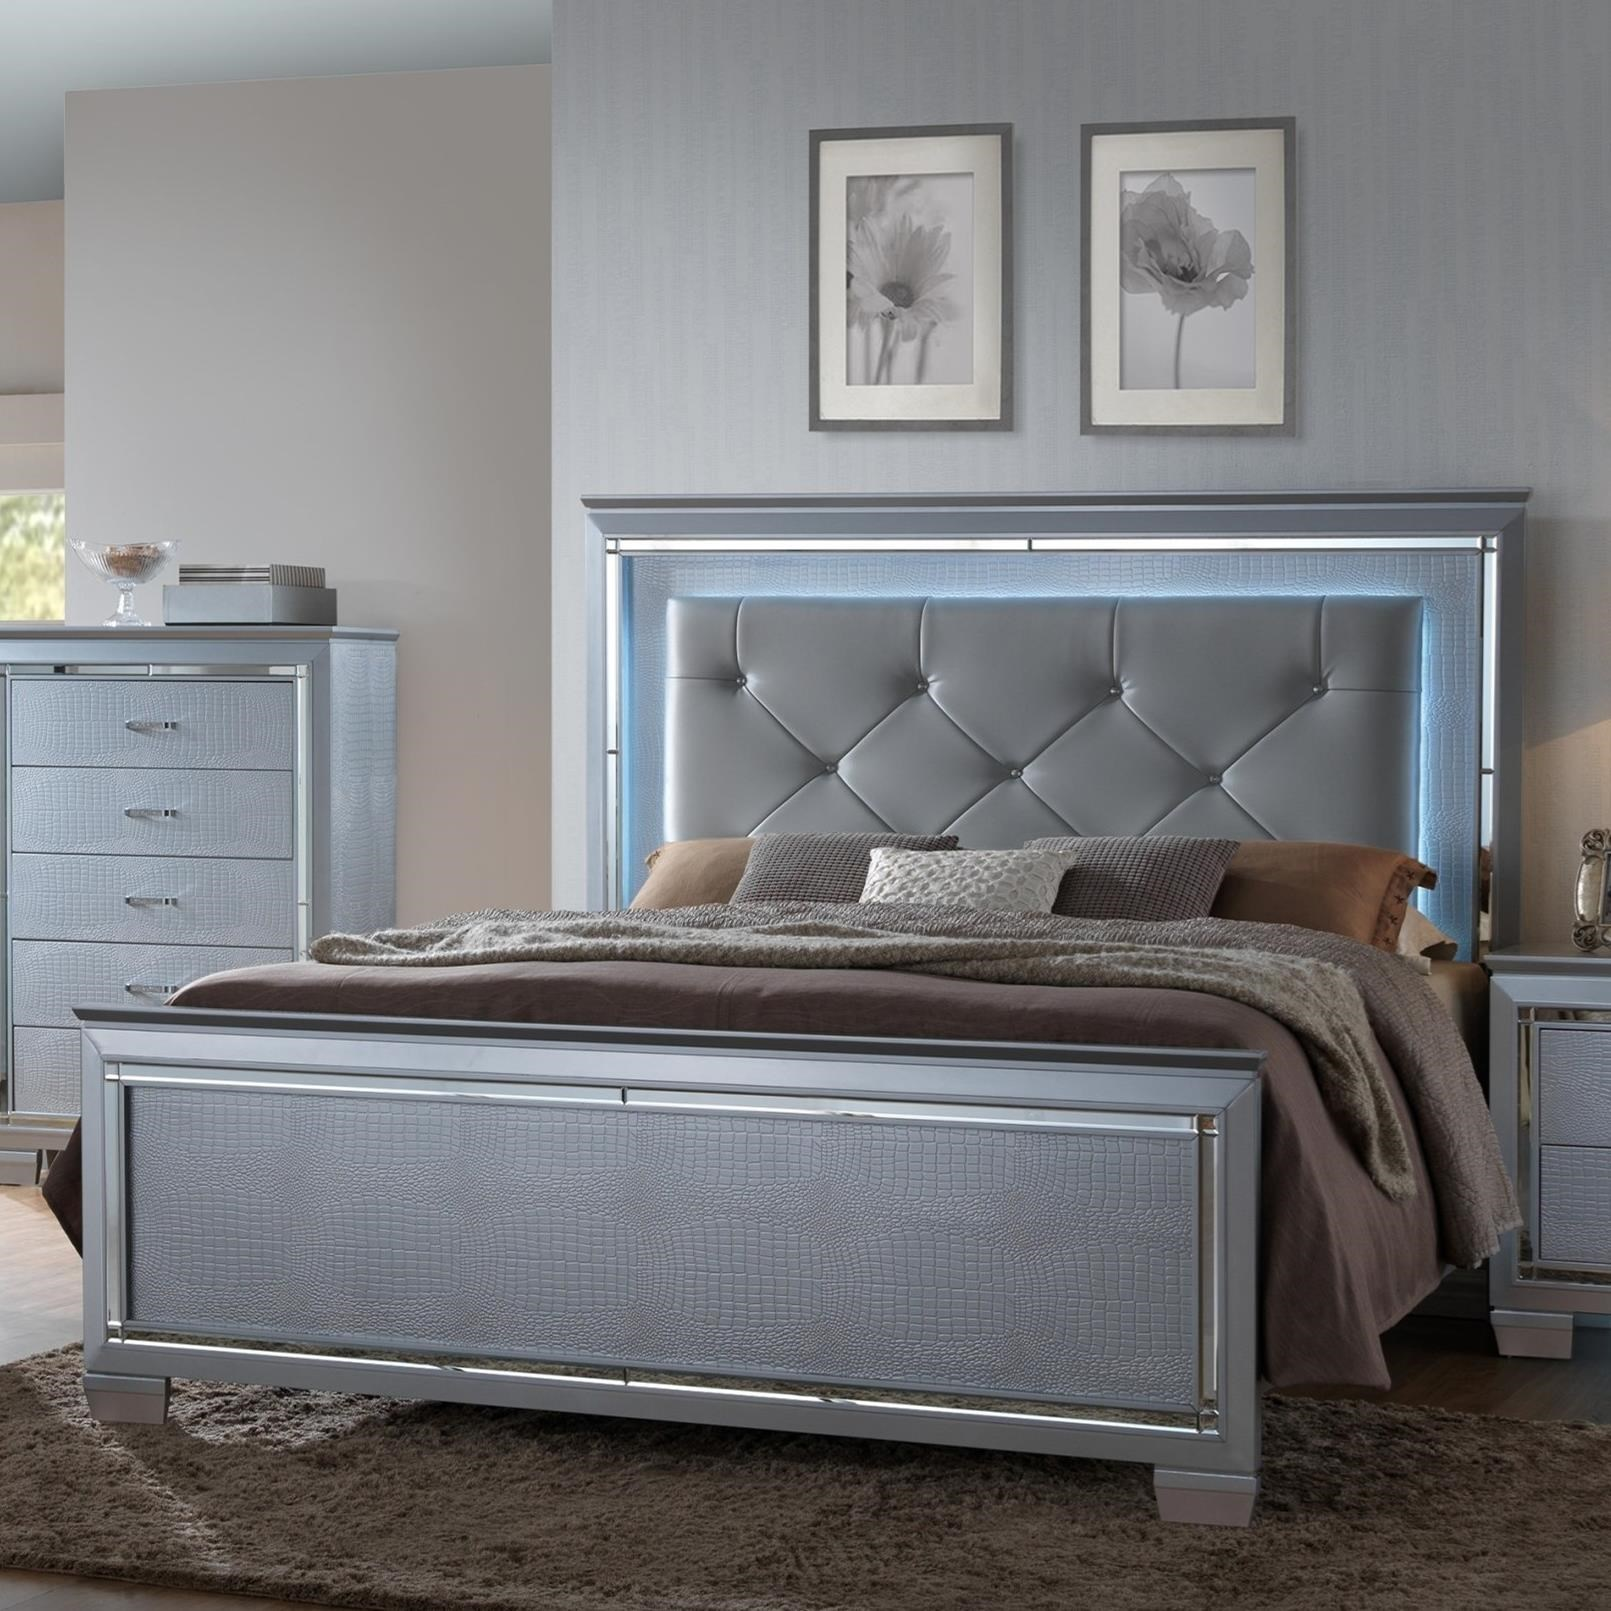 King Headboard and Footboard Bed with LED Backlighting